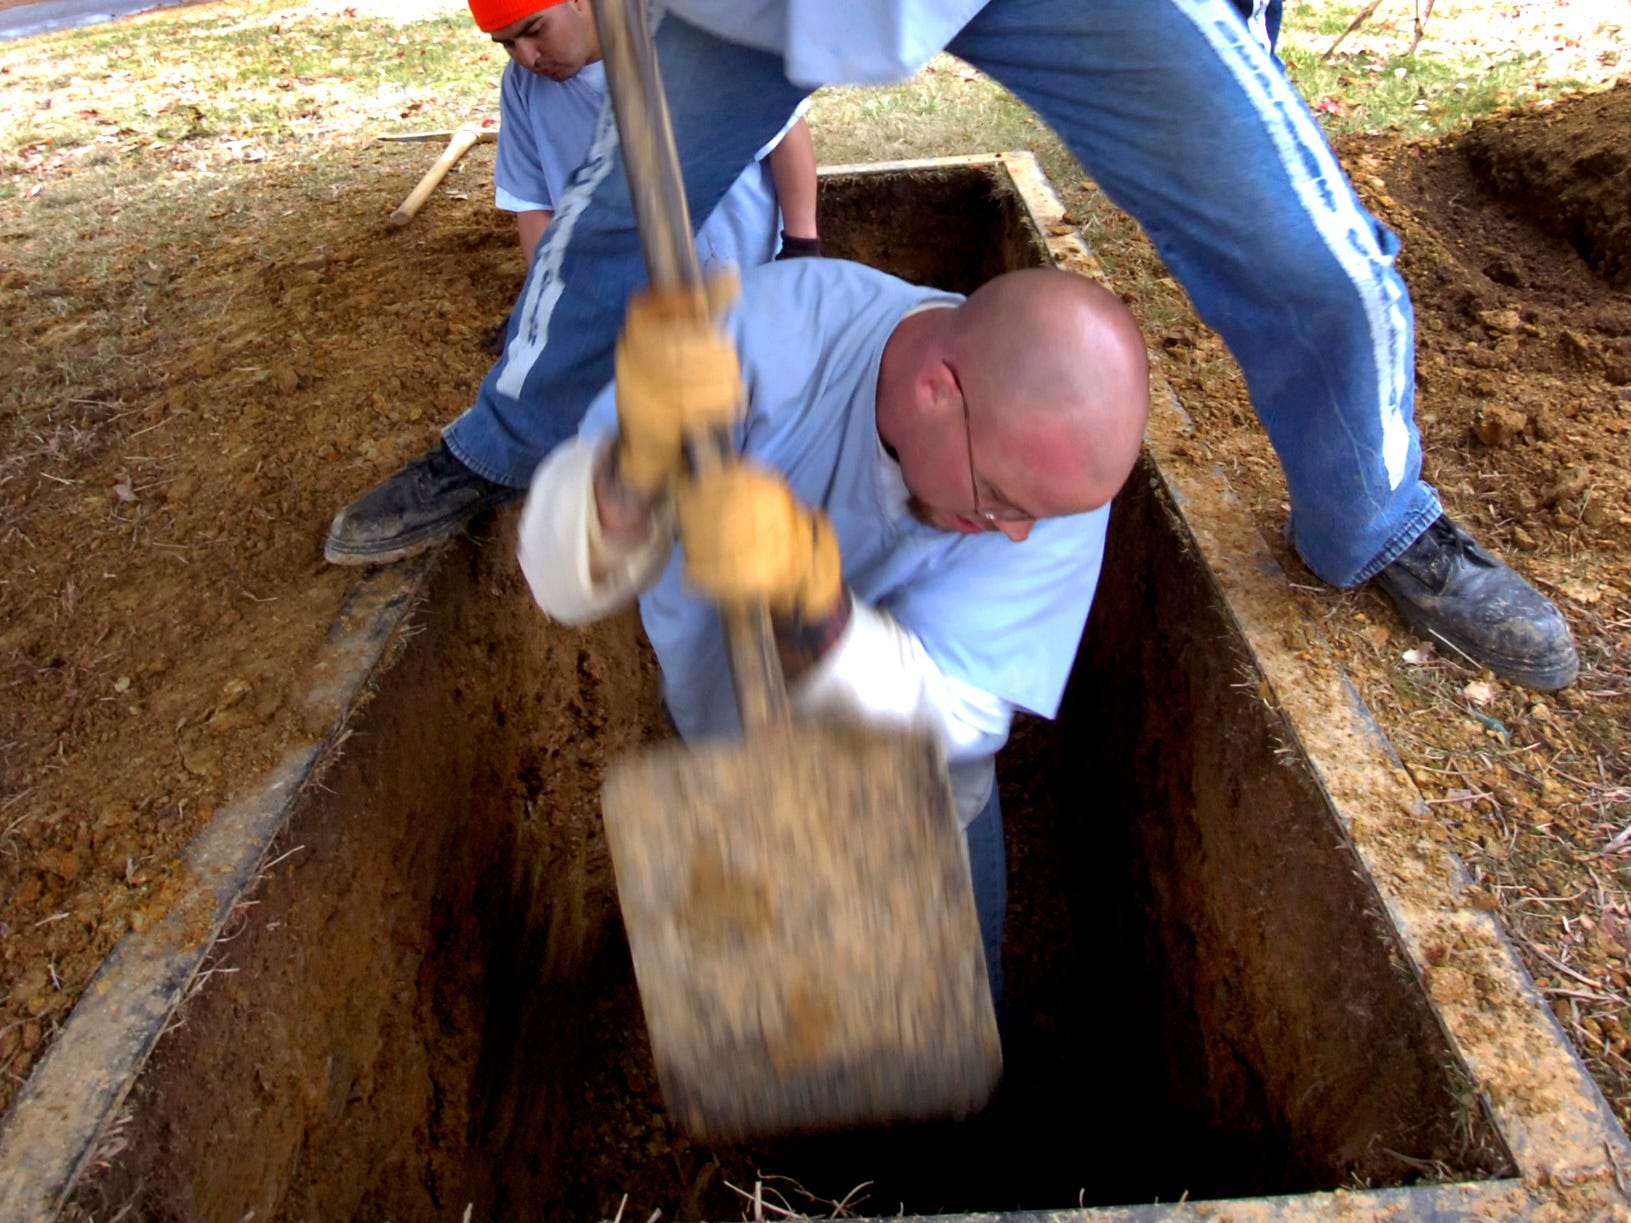 Prisoners from Morgan County Regional Correctional Complex regularly hand dig graves for residents of Morgan and Roane Counties who have financial need. Inmates Brent Hutcheson, top, and Mitch Stout use a 60-pound edger to smooth the sides of the grave the team was digging in Roane County Feb, 21, 2008. The inmates are pre-selected as safe to work outside the prison property enjoy not only getting outside but helping the community.